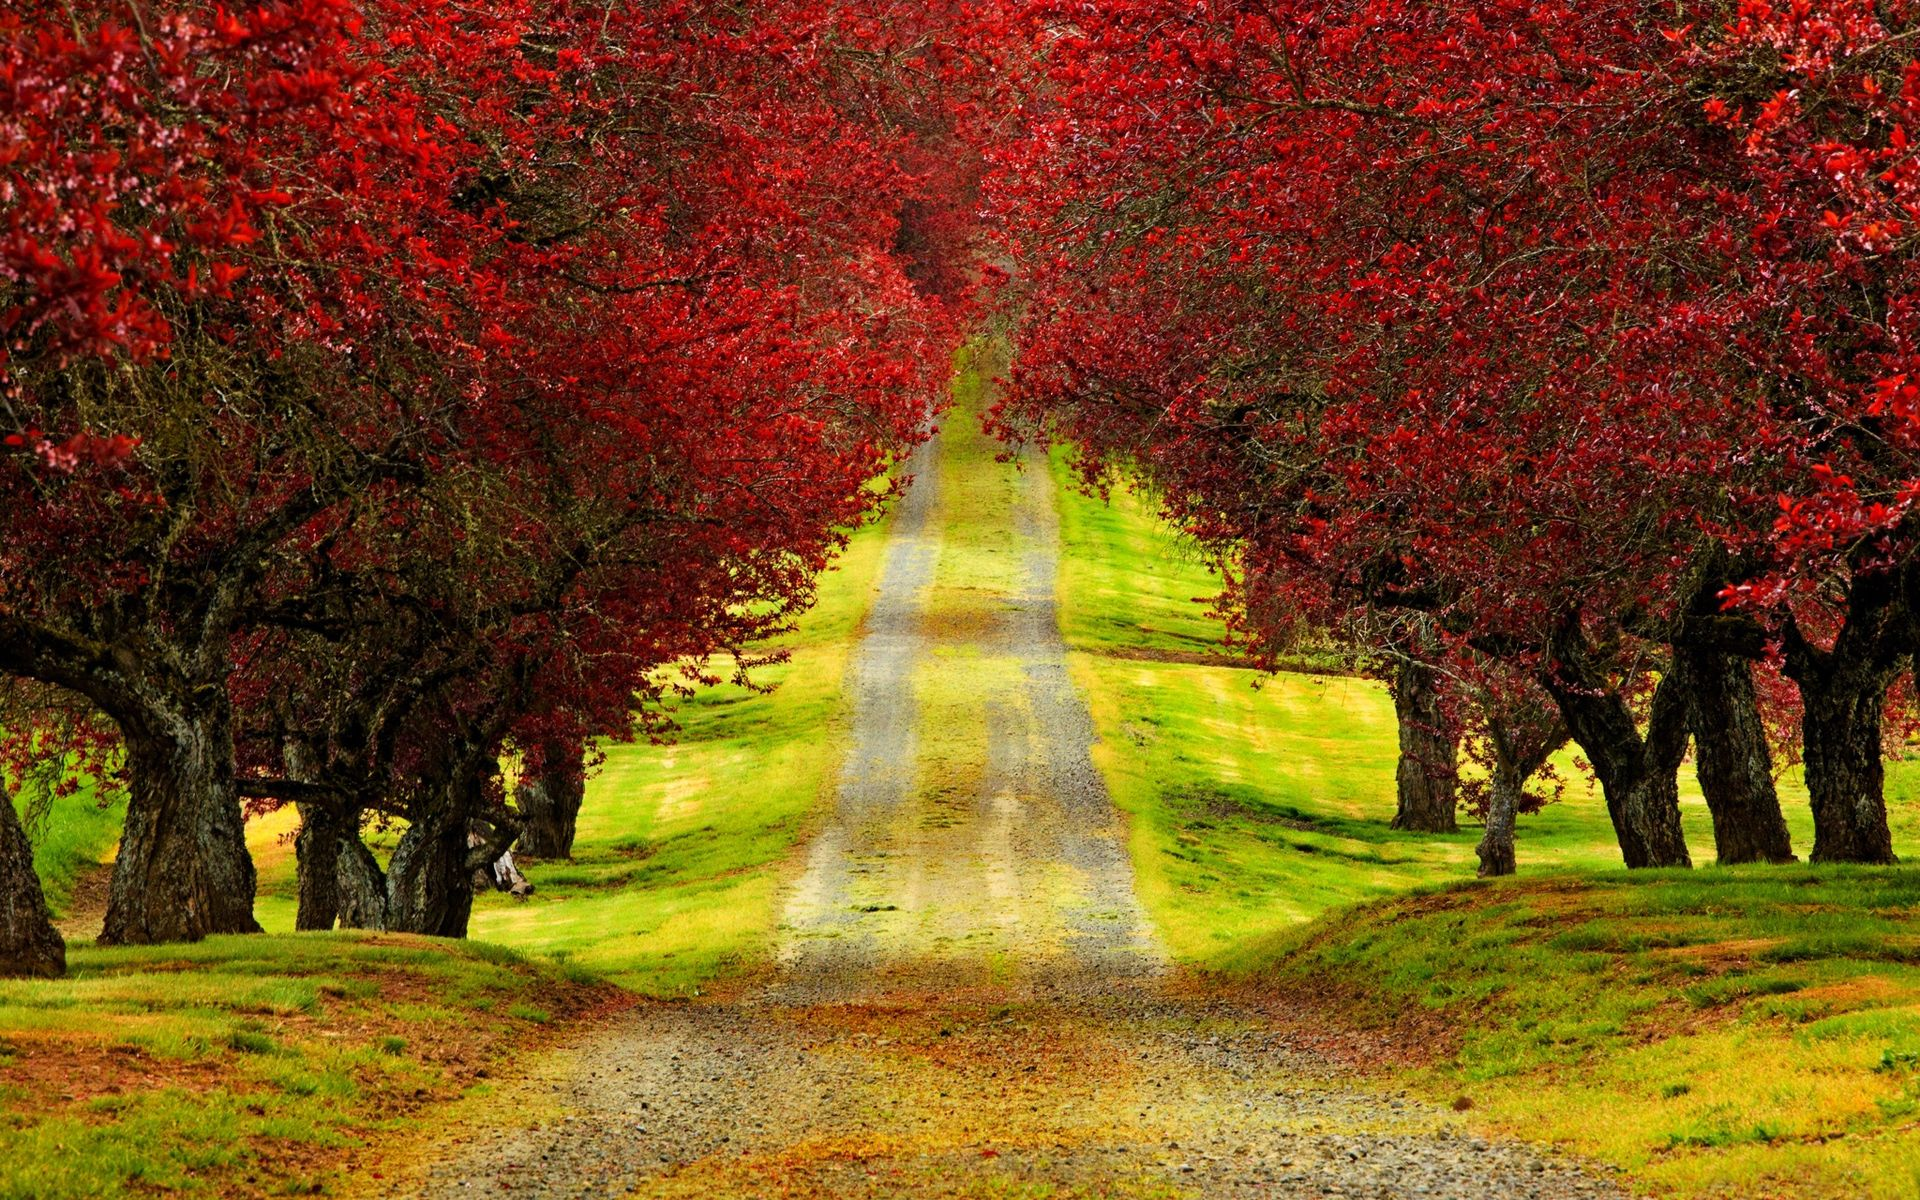 Red Trees Autumn Road Beautiful HD Wallpaper